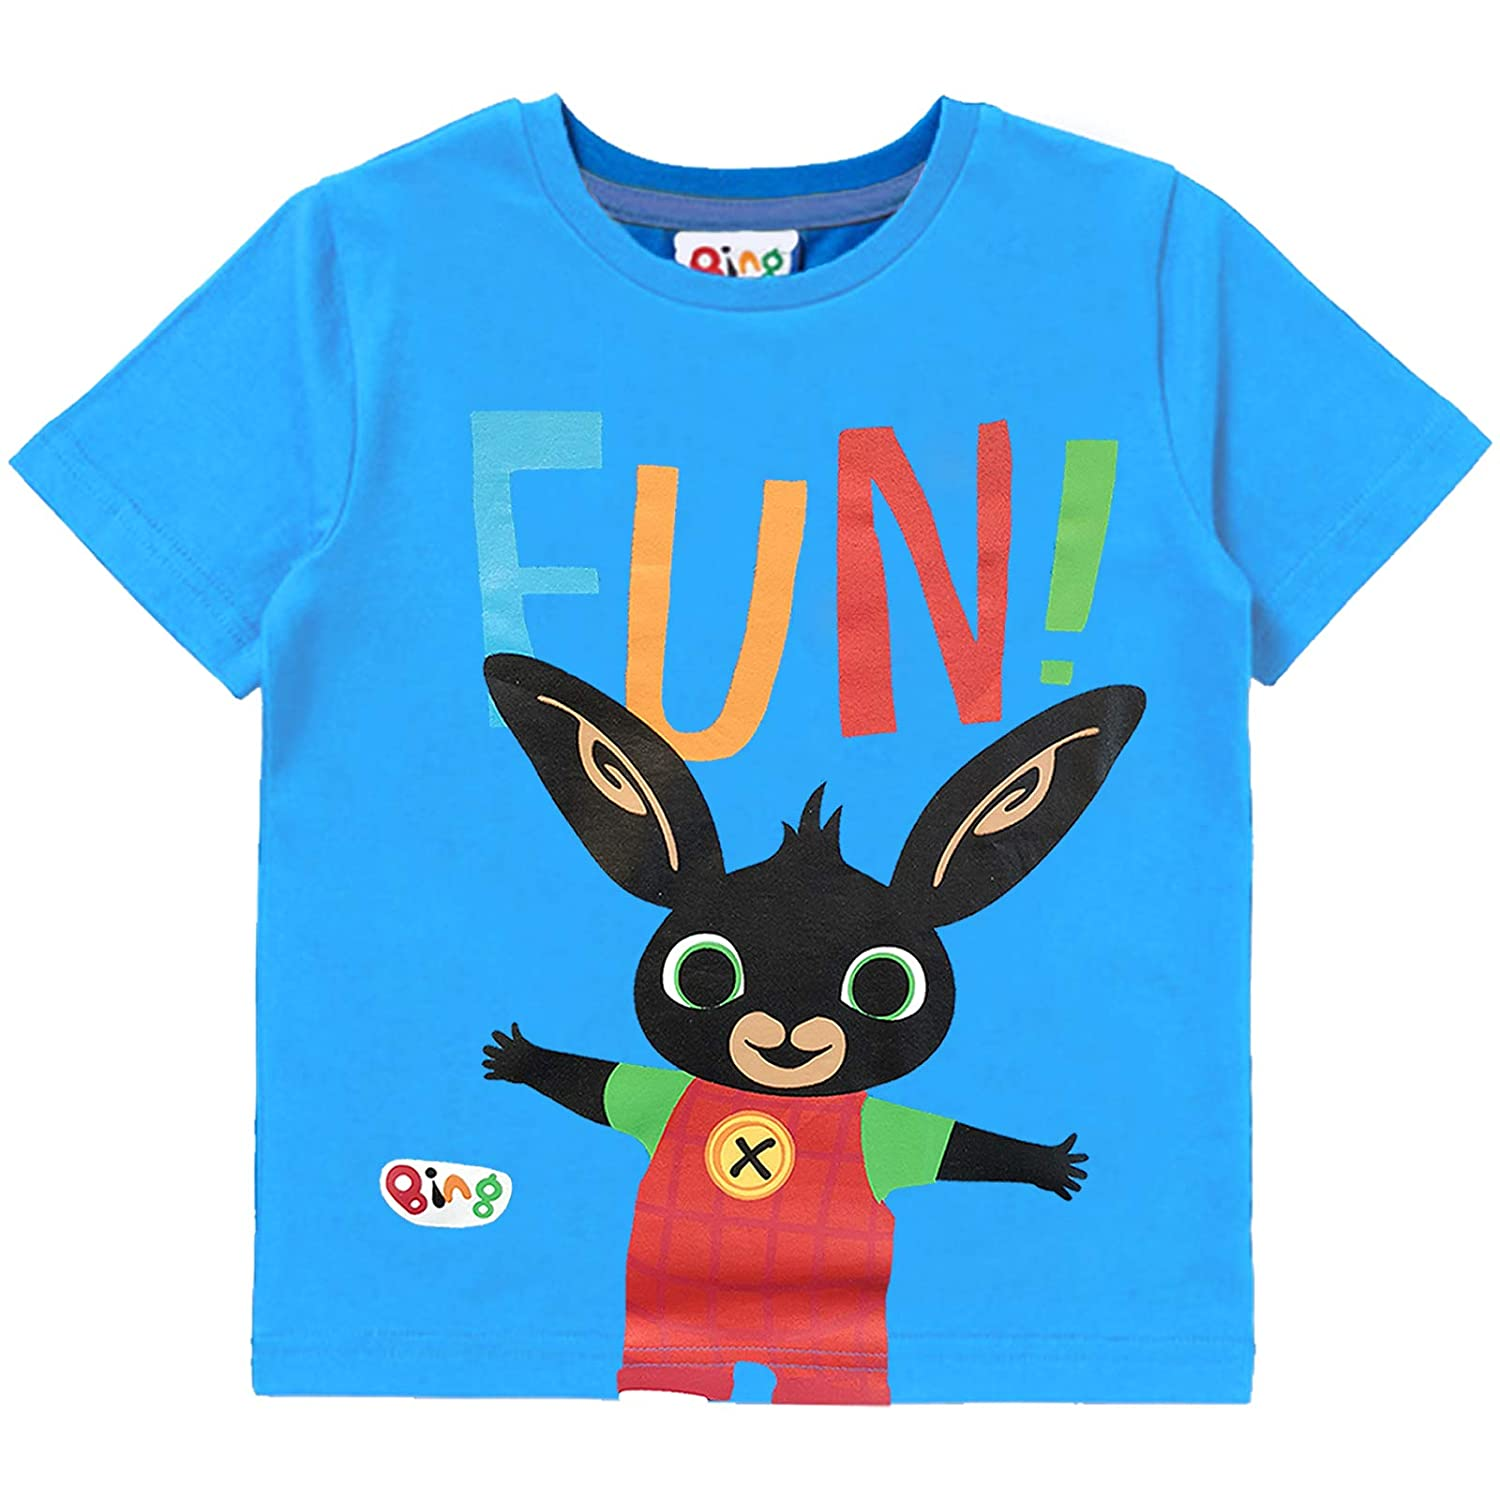 Short Sleeve Blue Cotton Top for Children Fun Tee for Boys or Girls from One of Their Favourite TV Shows Bing Bunny Kids Short-Sleeved T-Shirt Toddlers